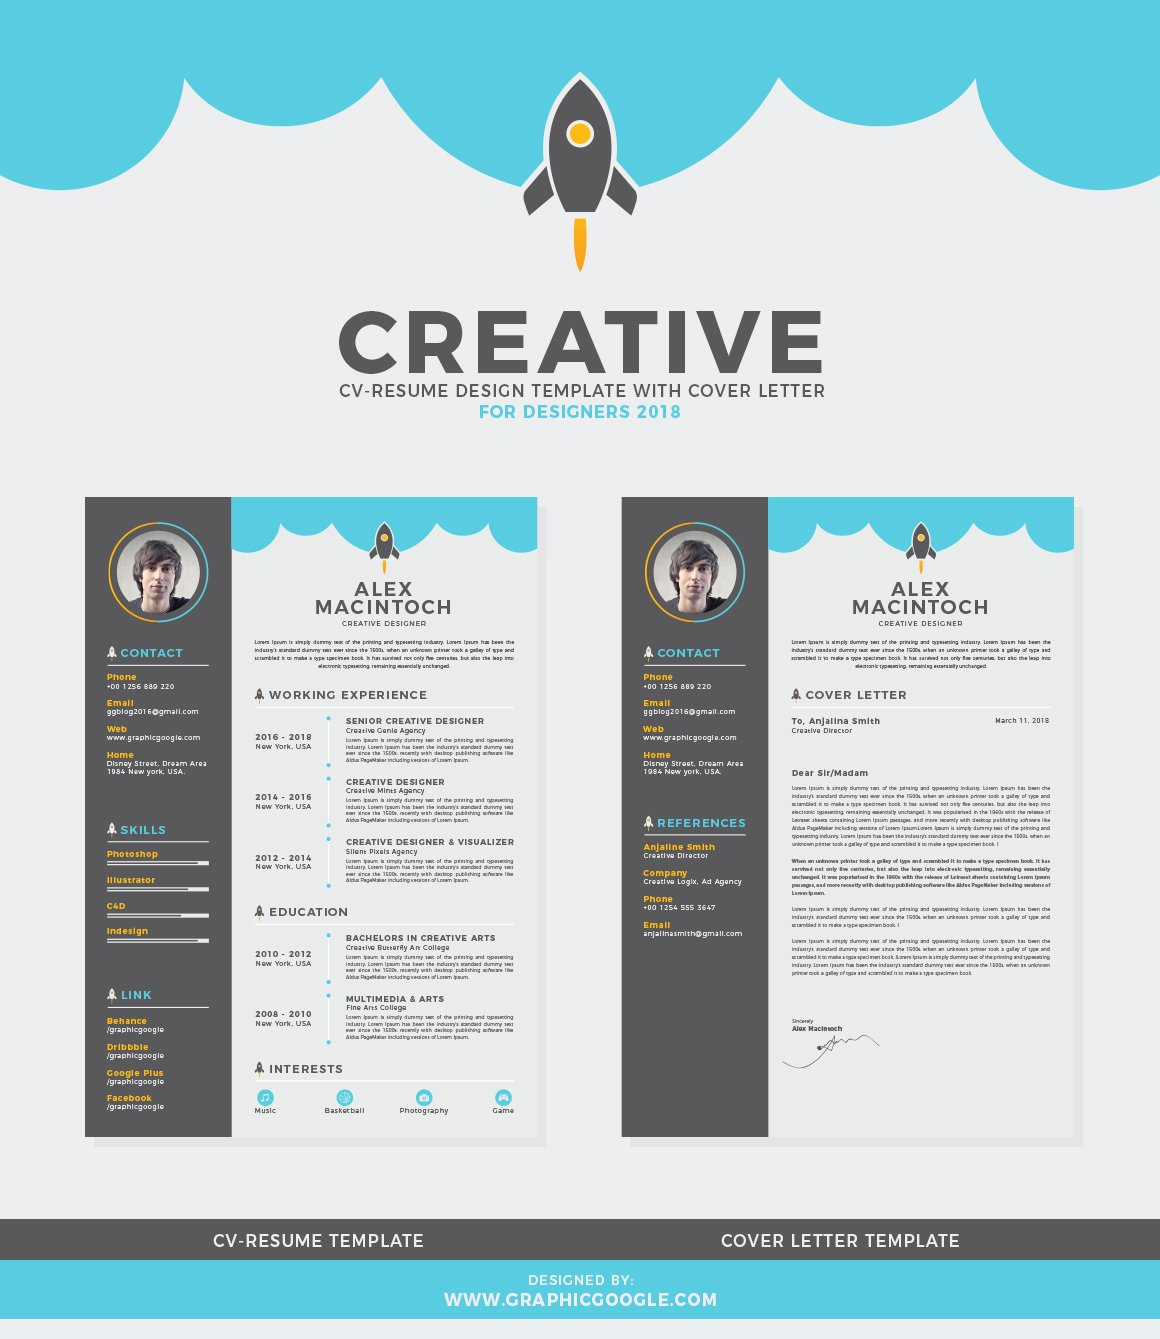 Creative Cover Letter Template Awesome Free Creative Cv Resume Design Template with Cover Letter